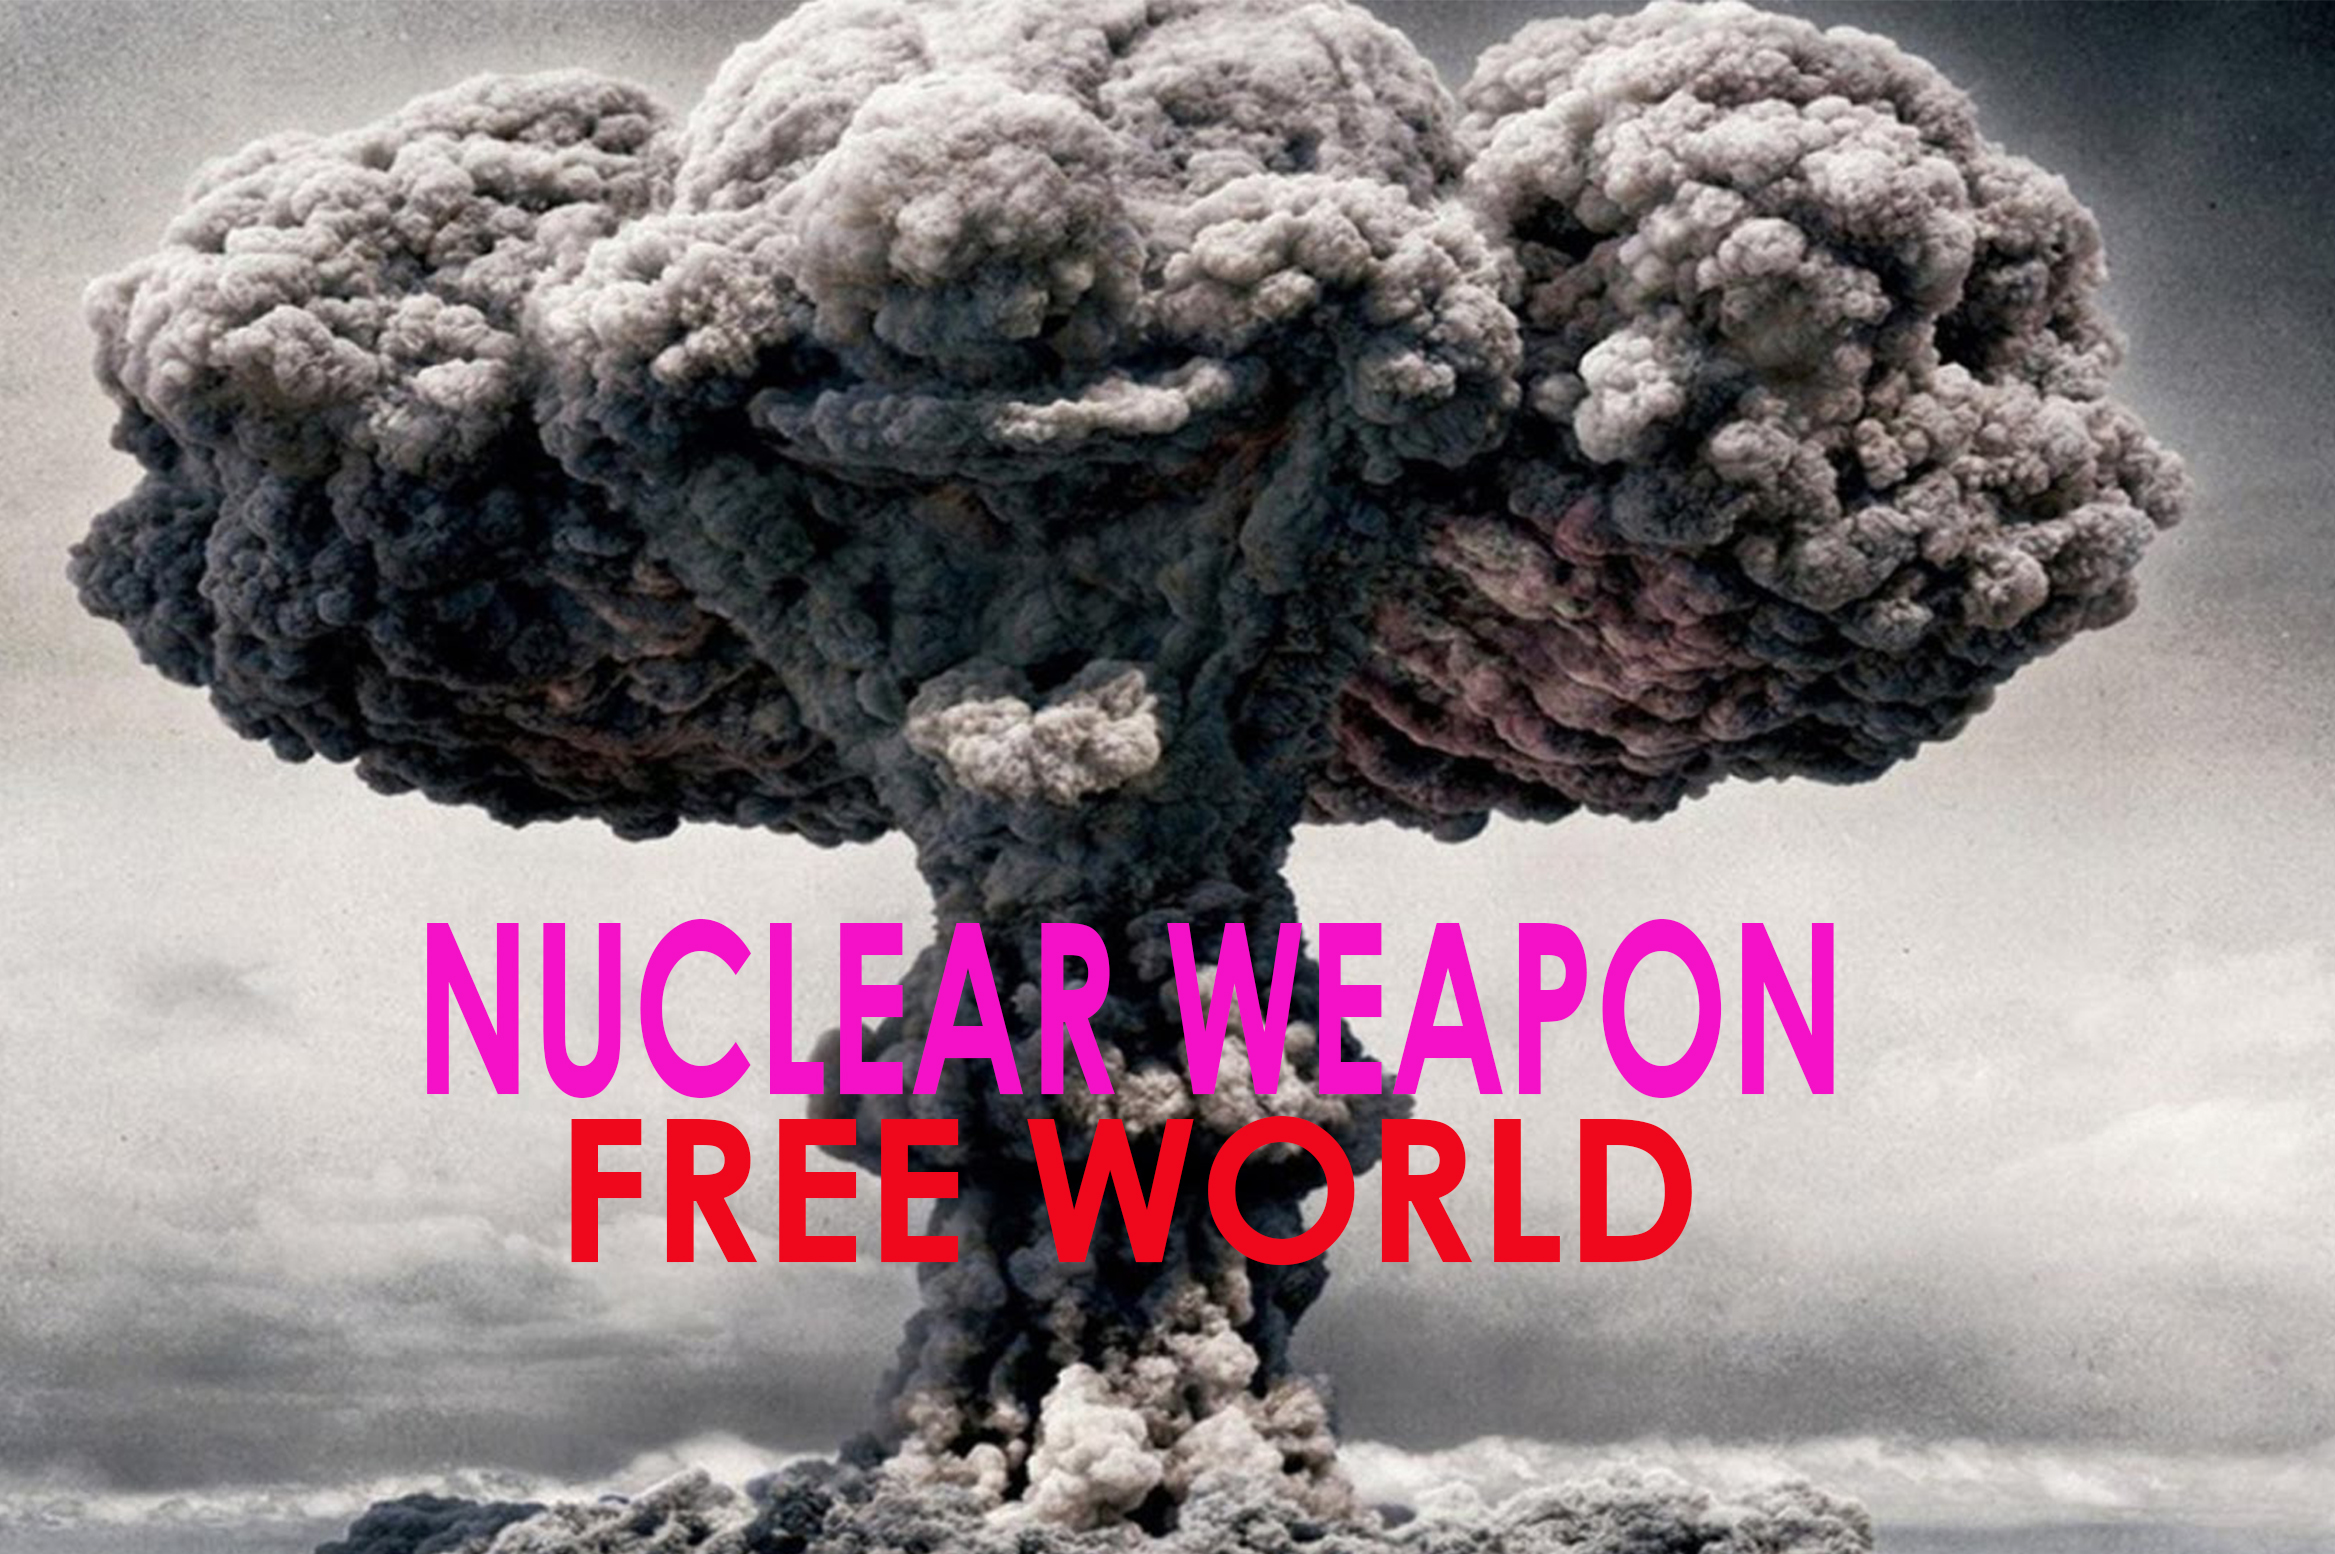 the threat of nuclear proliferation Roundtable: nonproliferation in the 21st century the threat of nuclear proliferation: perception and reality jacques e c hymans n uclear weapons proliferation is at the top of the news these days.